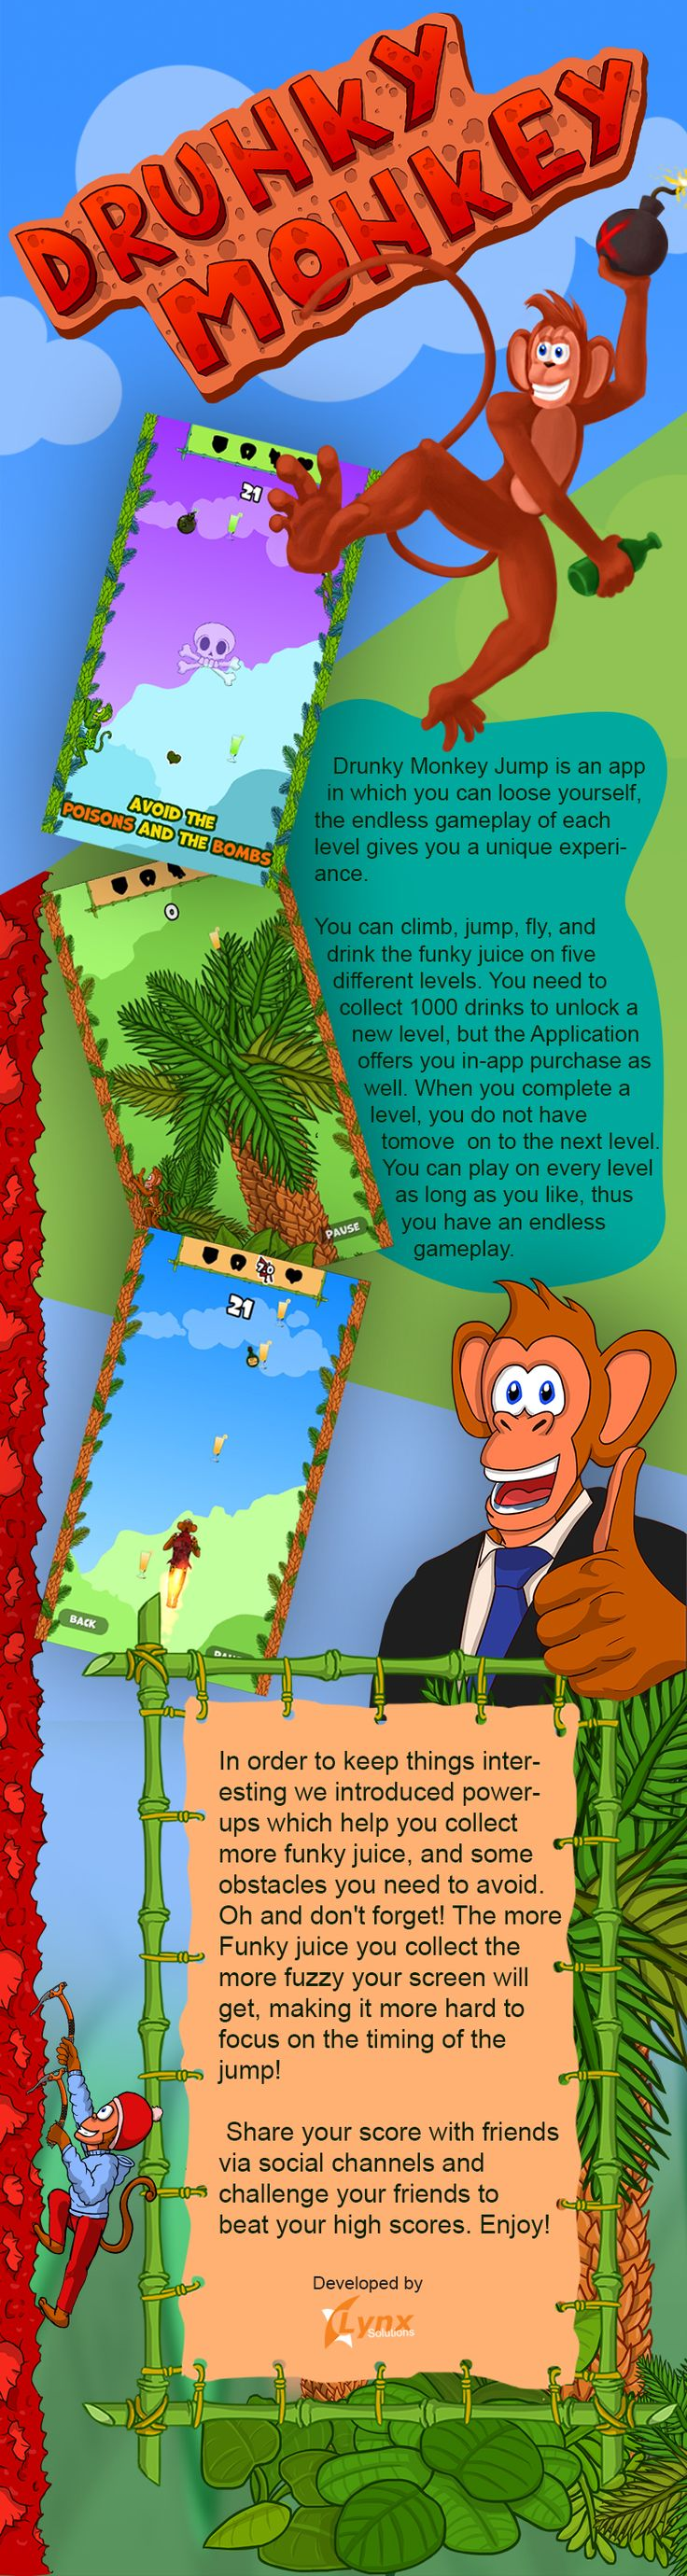 Drunky Monkey Jump! Endless gameplay, 5 levels! How manny bottles of Funky Juice can you drink?